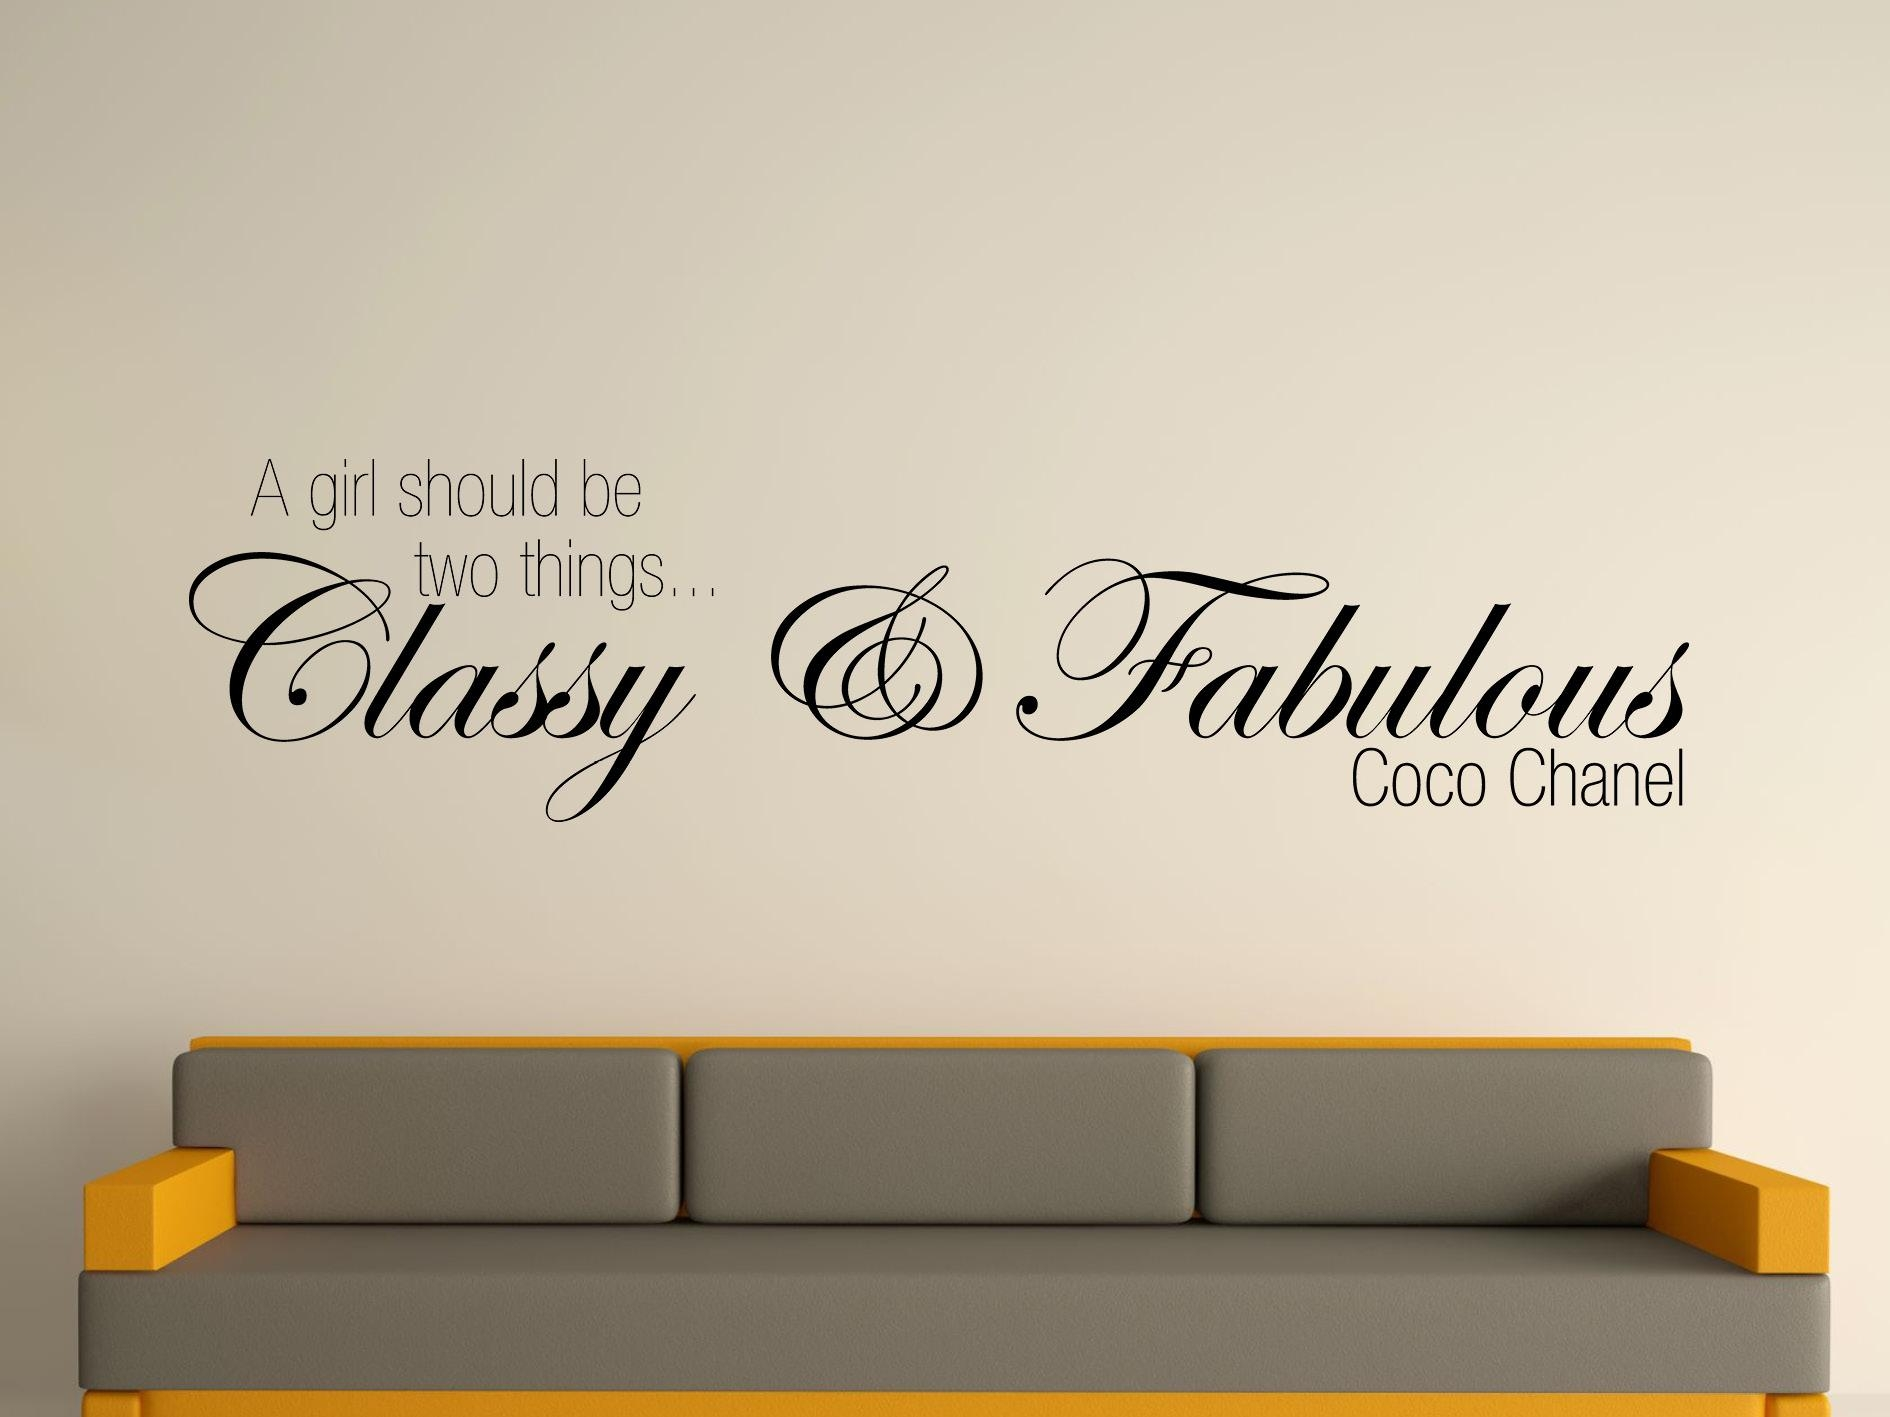 Coco Chanel Quotes Wall Decals Quotesgram Home Furniture Diy Decor For Coco Chanel Wall Stickers (Image 9 of 20)